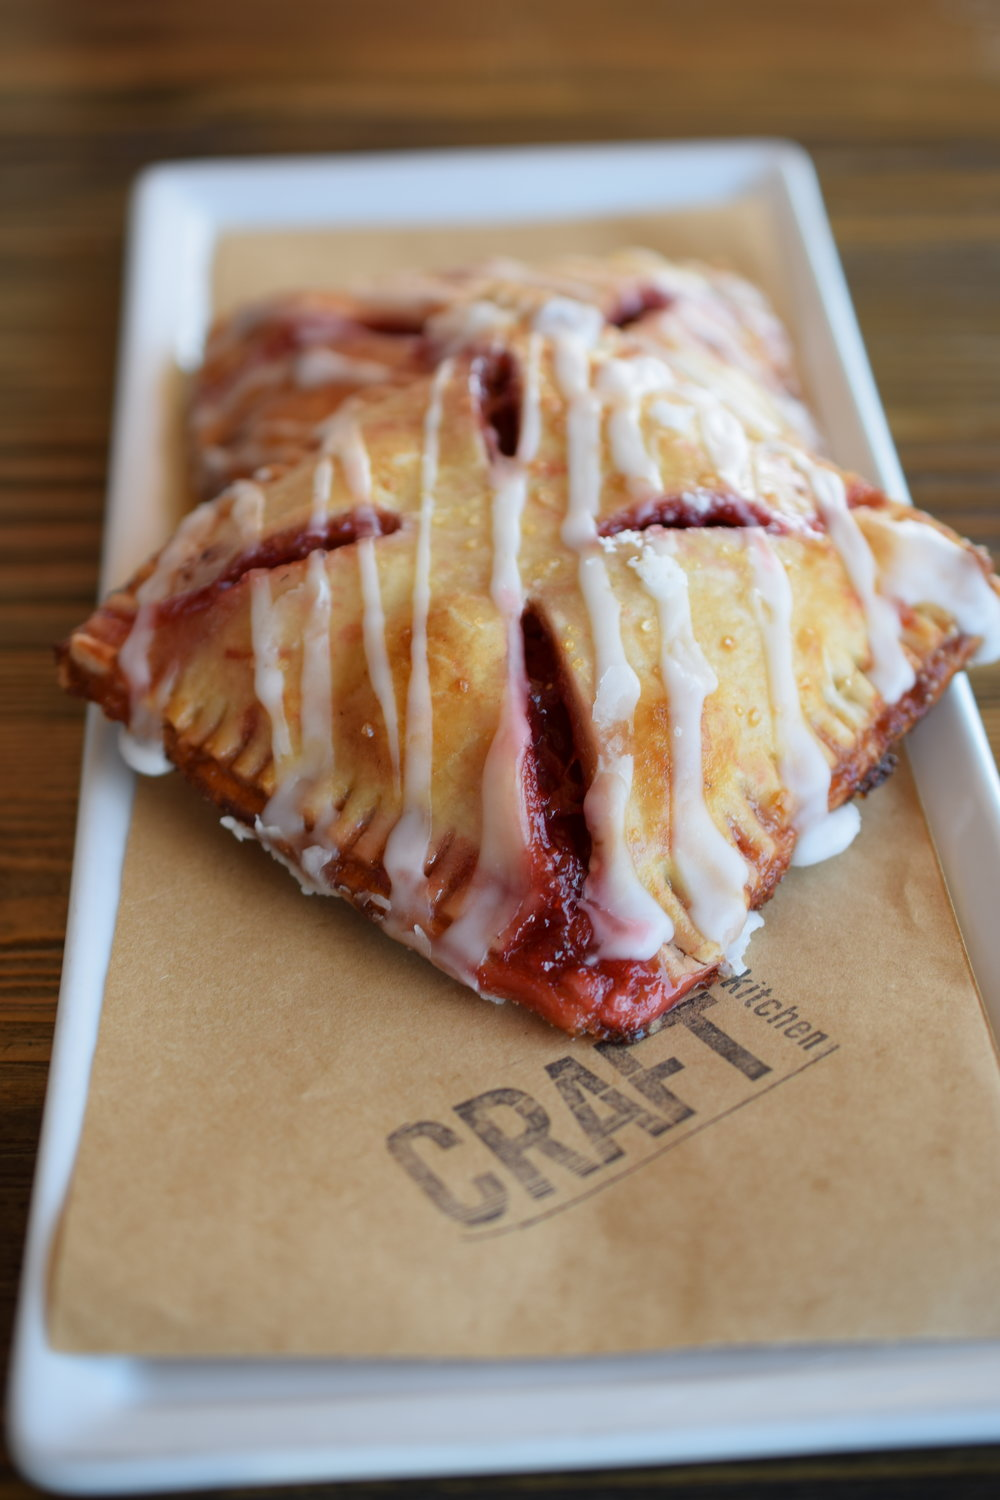 Housemade Pop-Tarts, via Bread and Butter PR